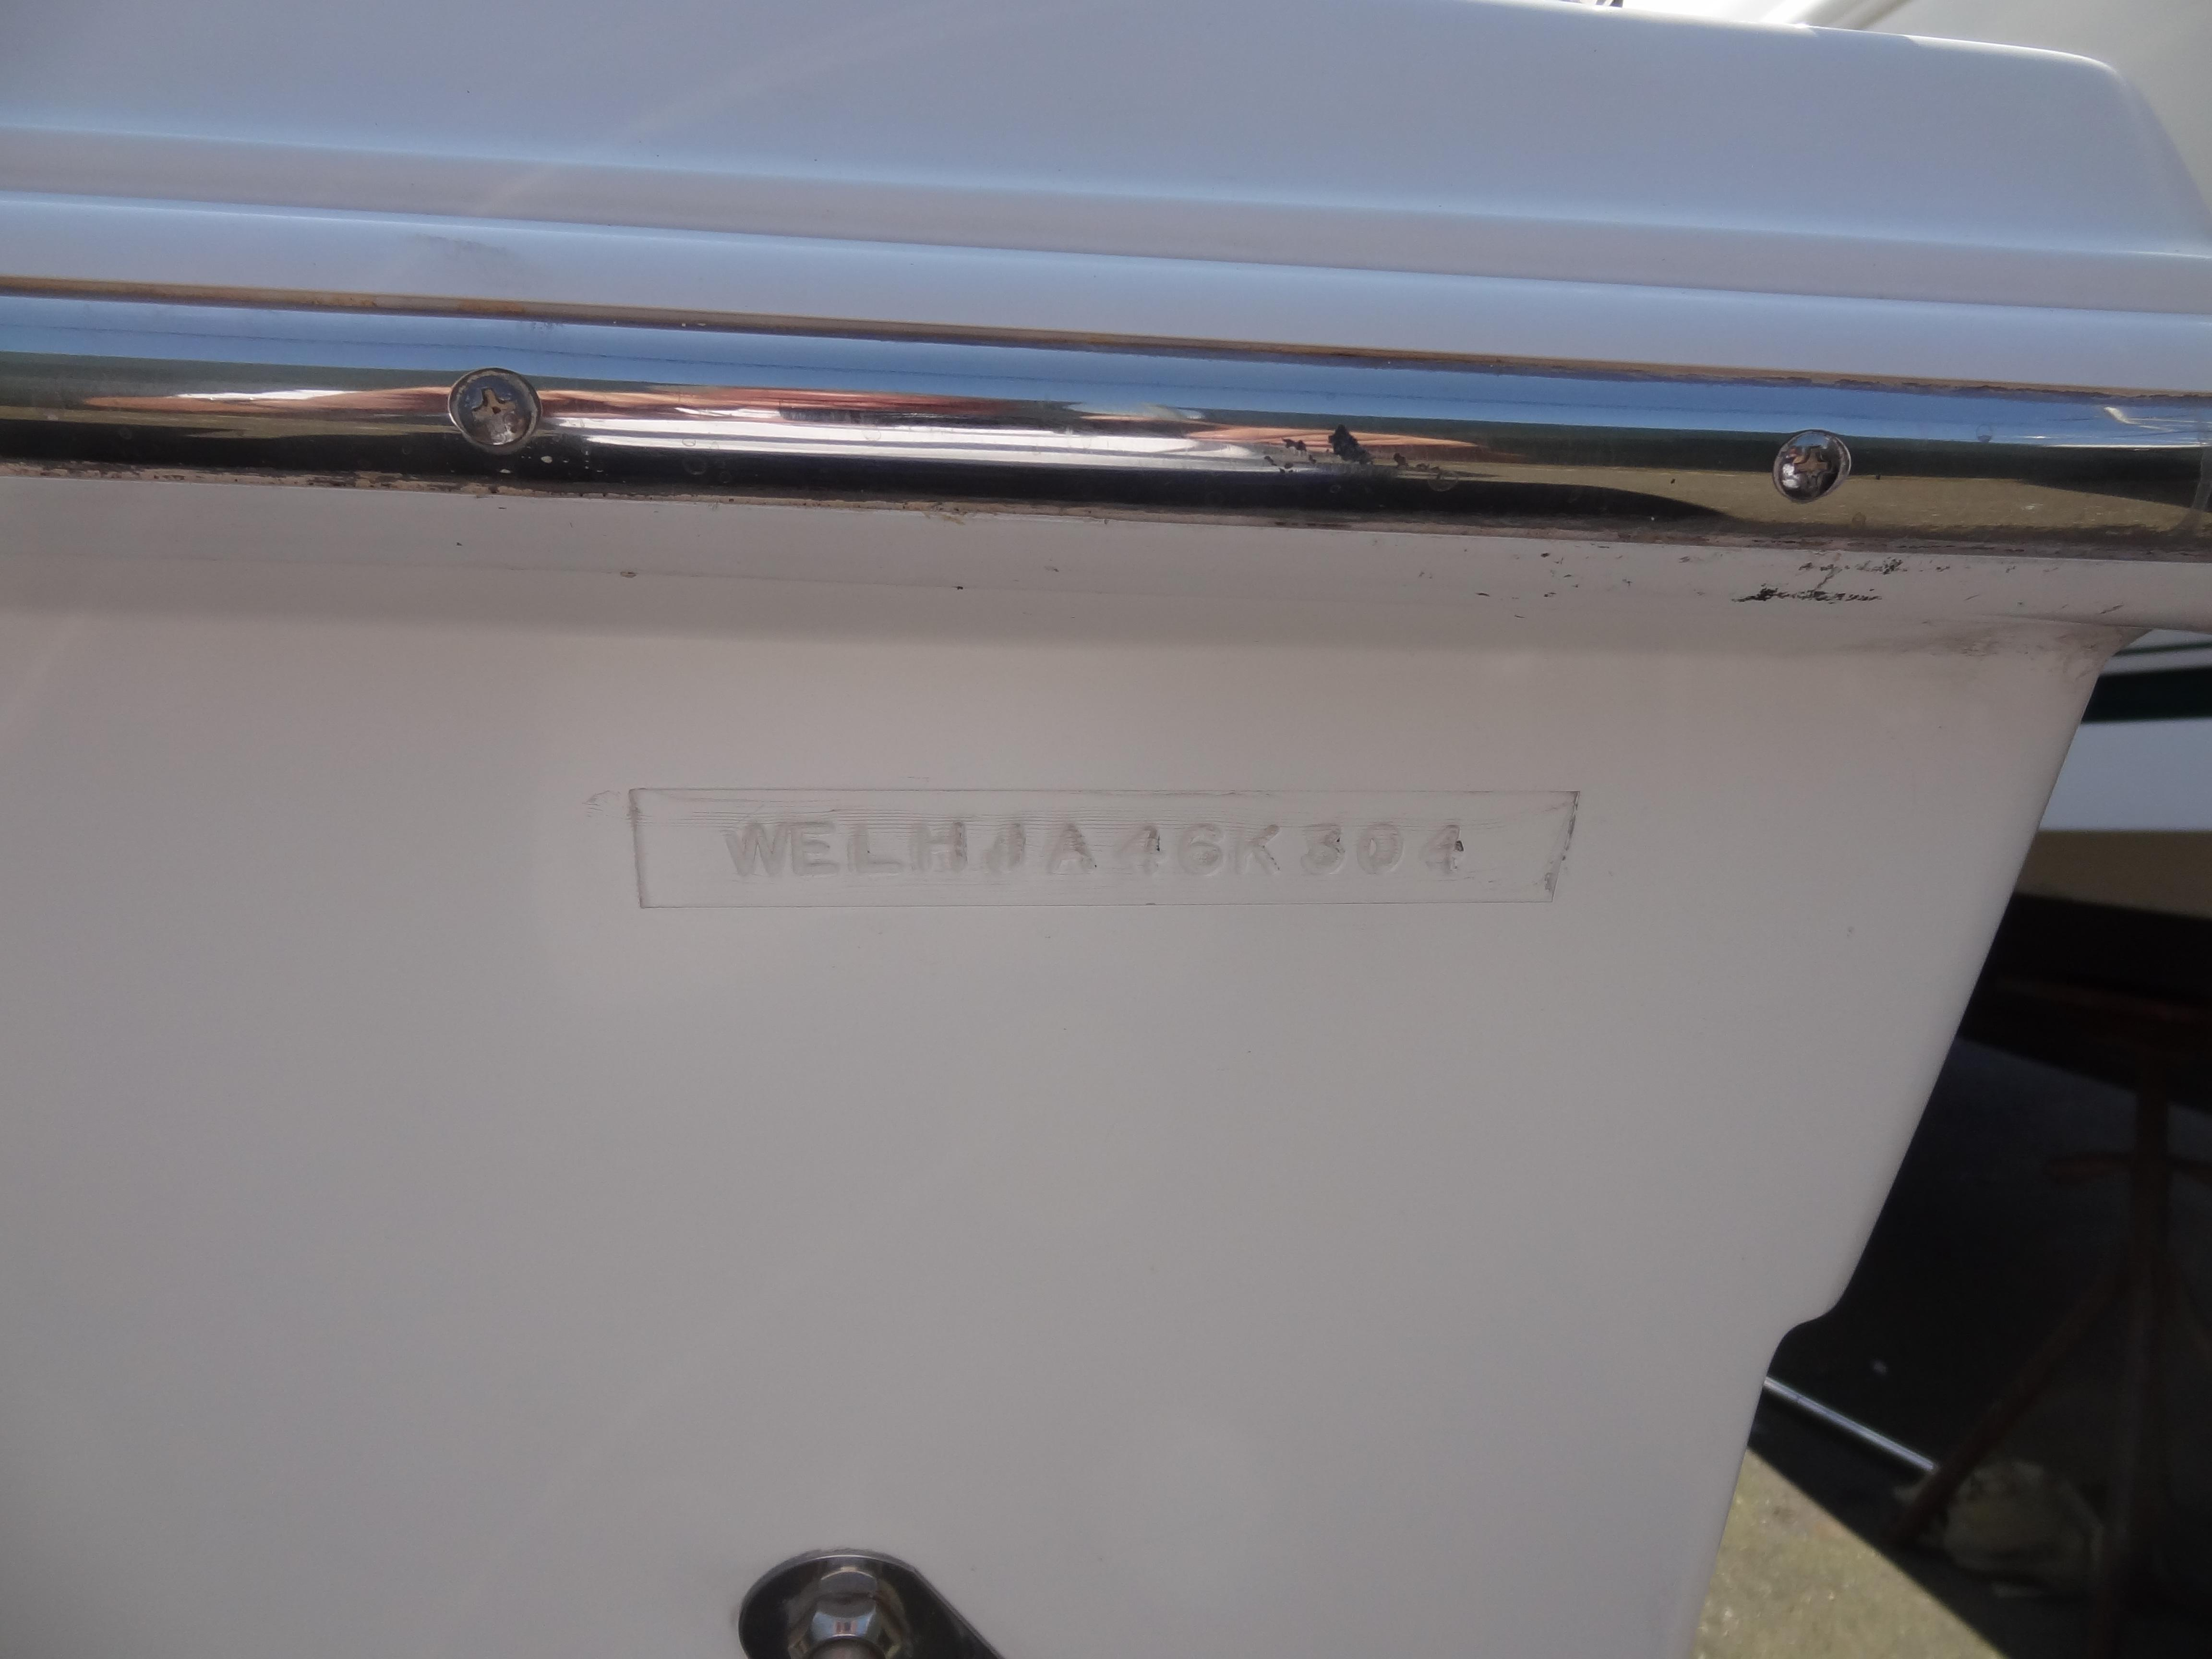 2004 Wellcraft Walkaround 23